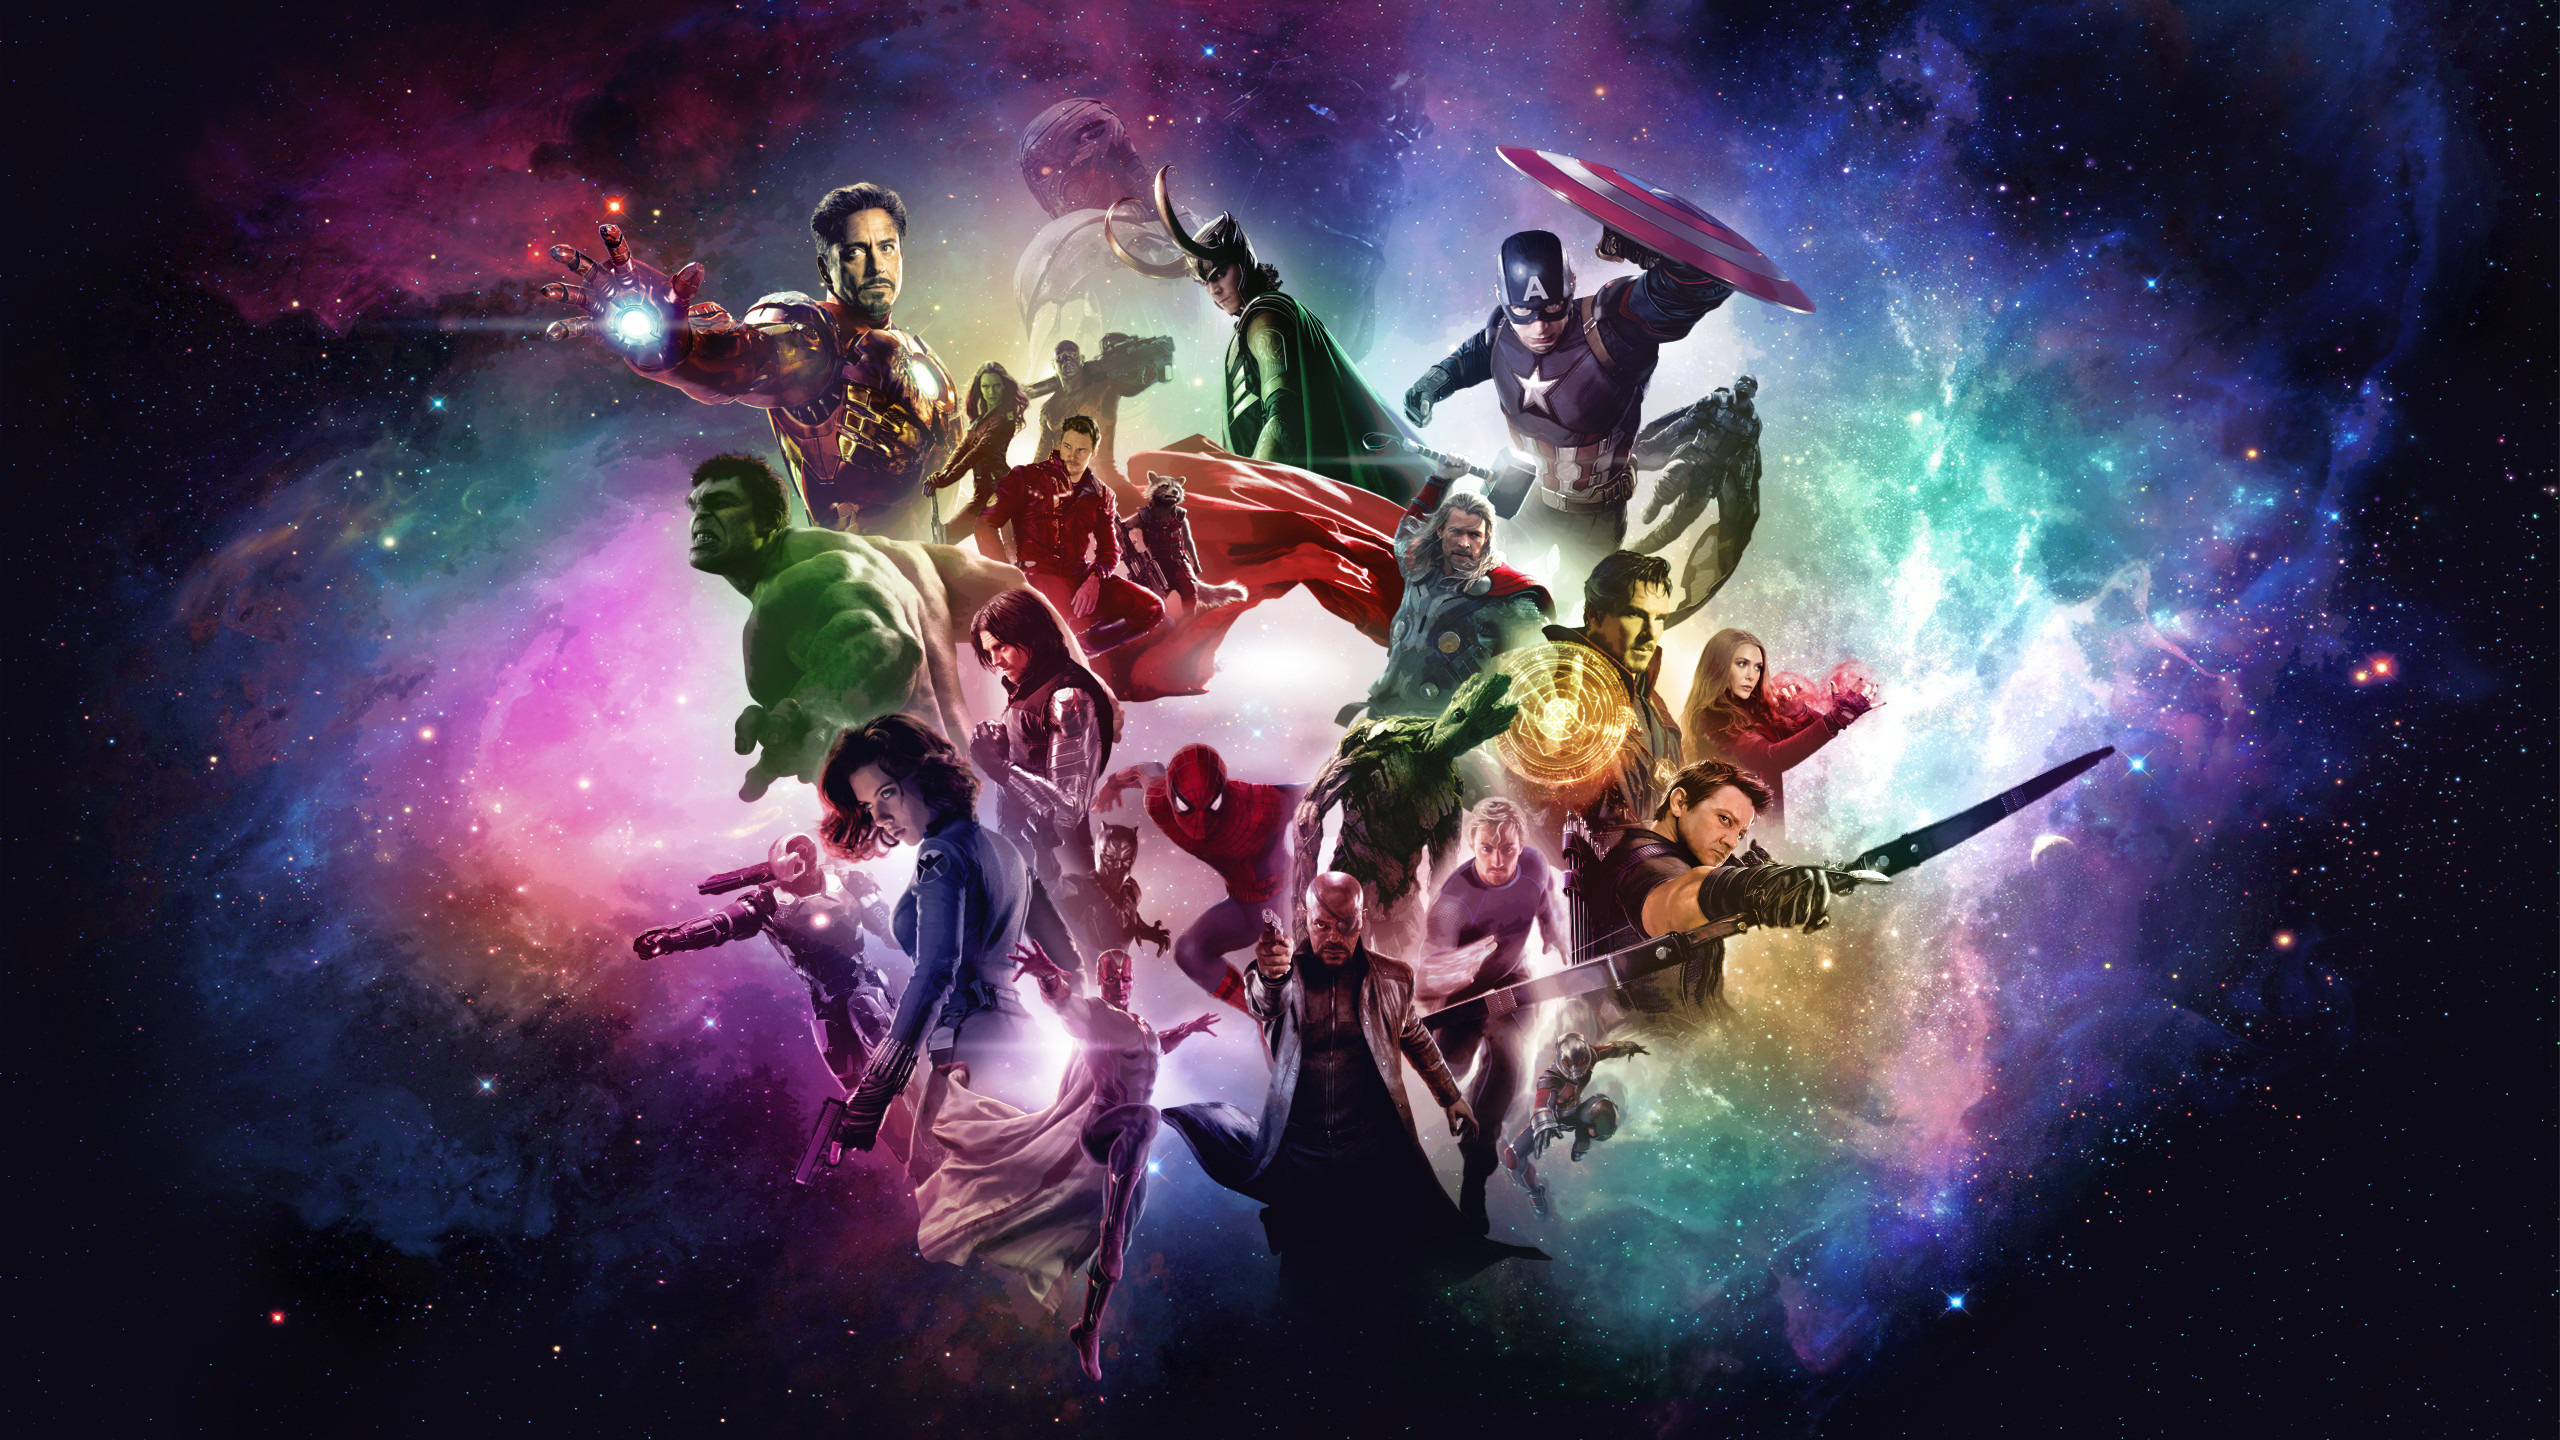 Marvel Cinematic Universe Wallpaper by RockLou Marvel Cinematic Universe  Wallpaper by RockLou